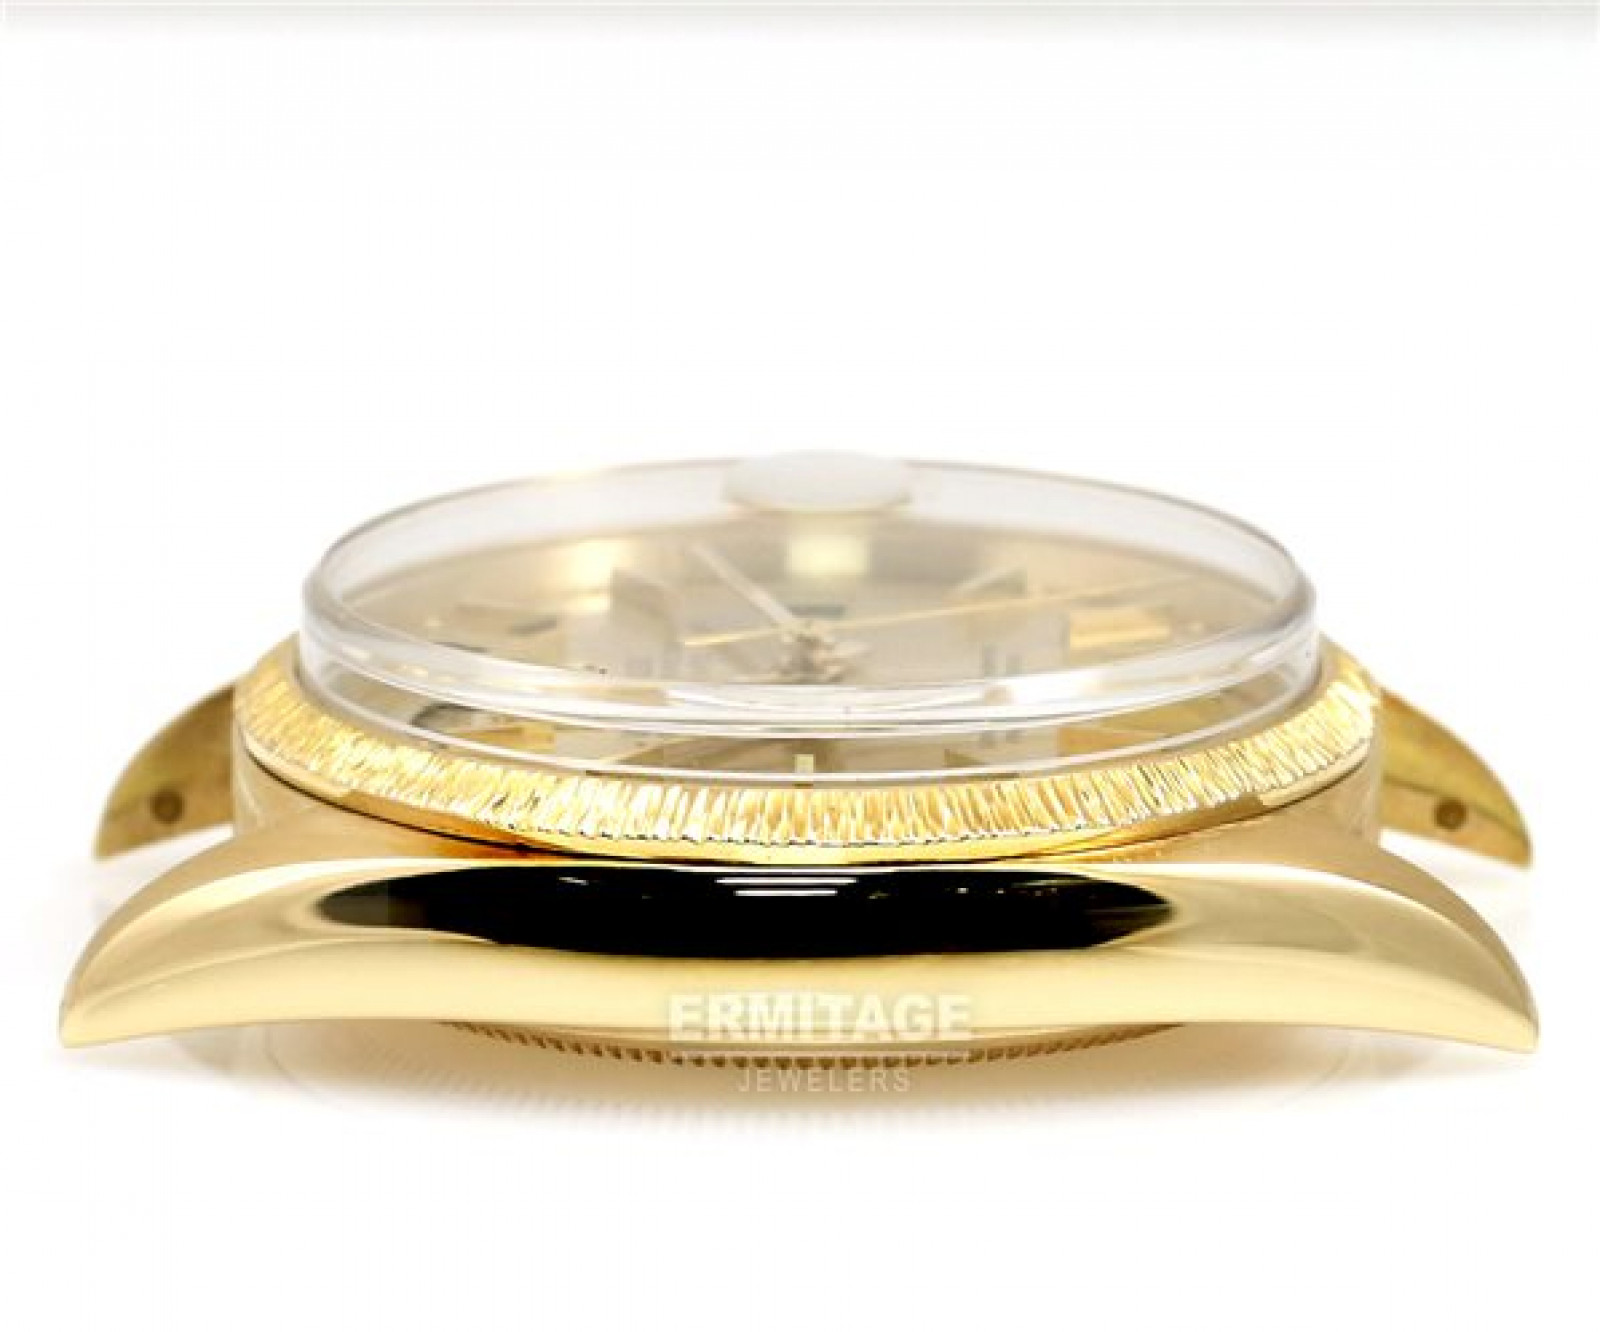 Vintage Rolex Day-Date 1807 Gold Year 1970 with Champagne Dial